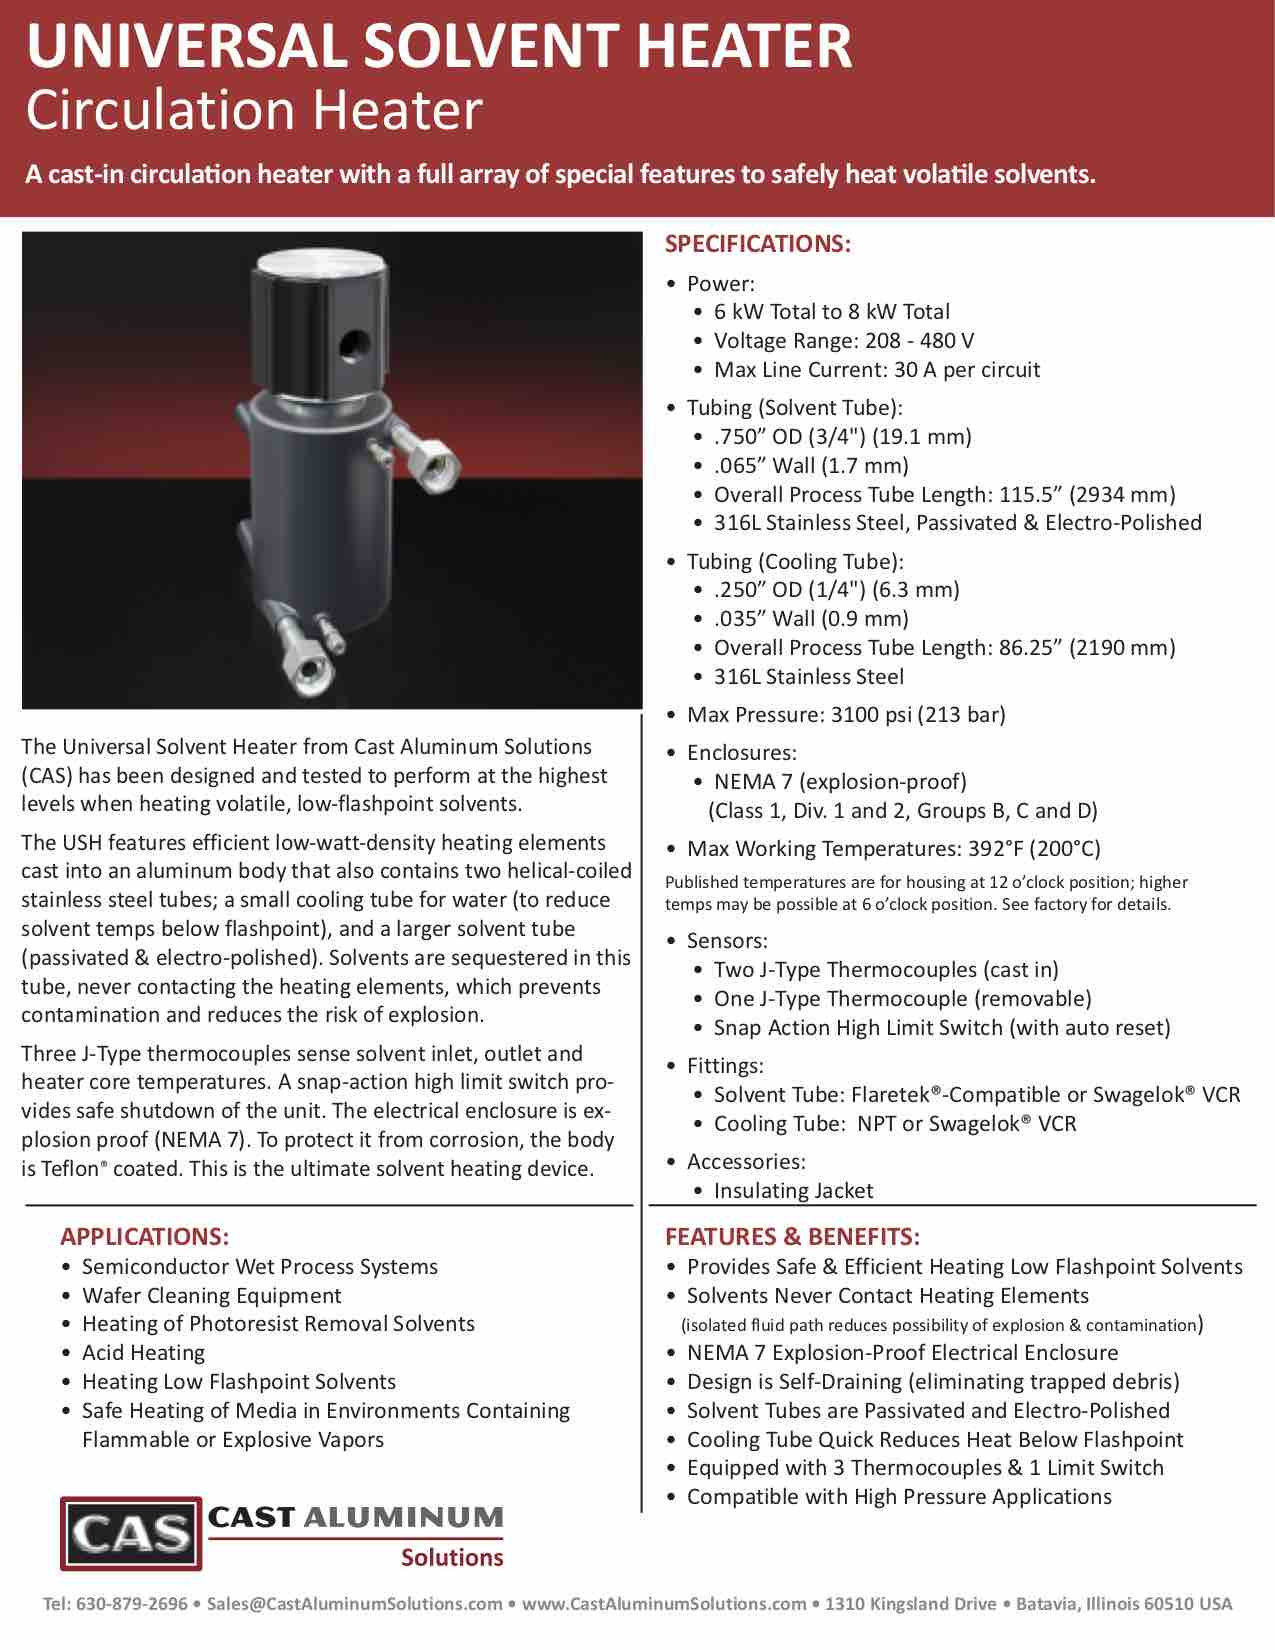 Universal Solvent Heater Technical Brochure Cast Aluminum Solutions (dragged)